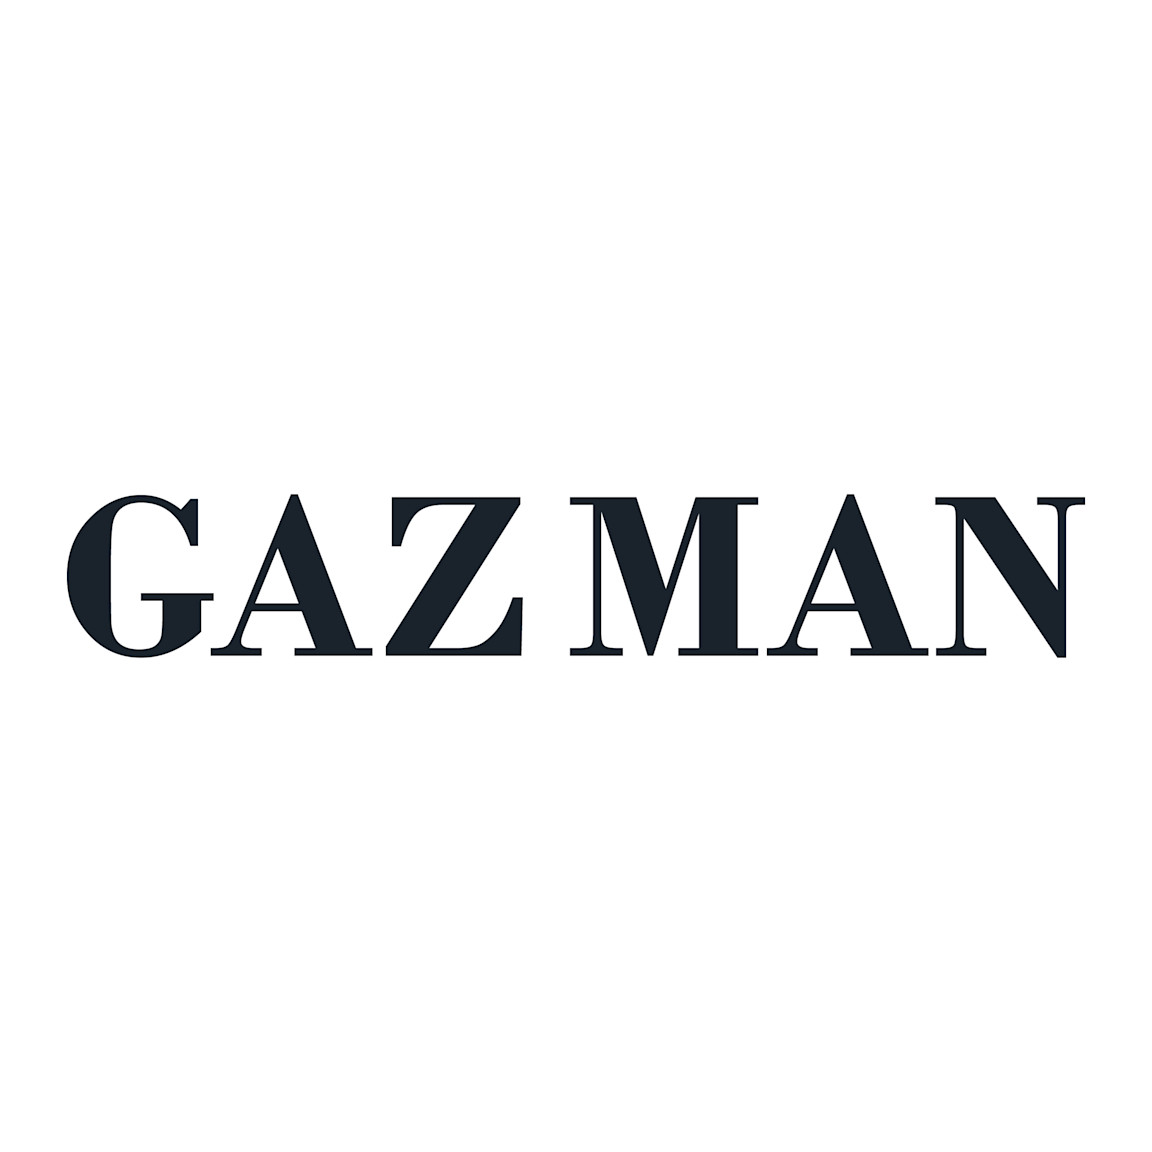 GAZMAN: Up to 50% off selected styles